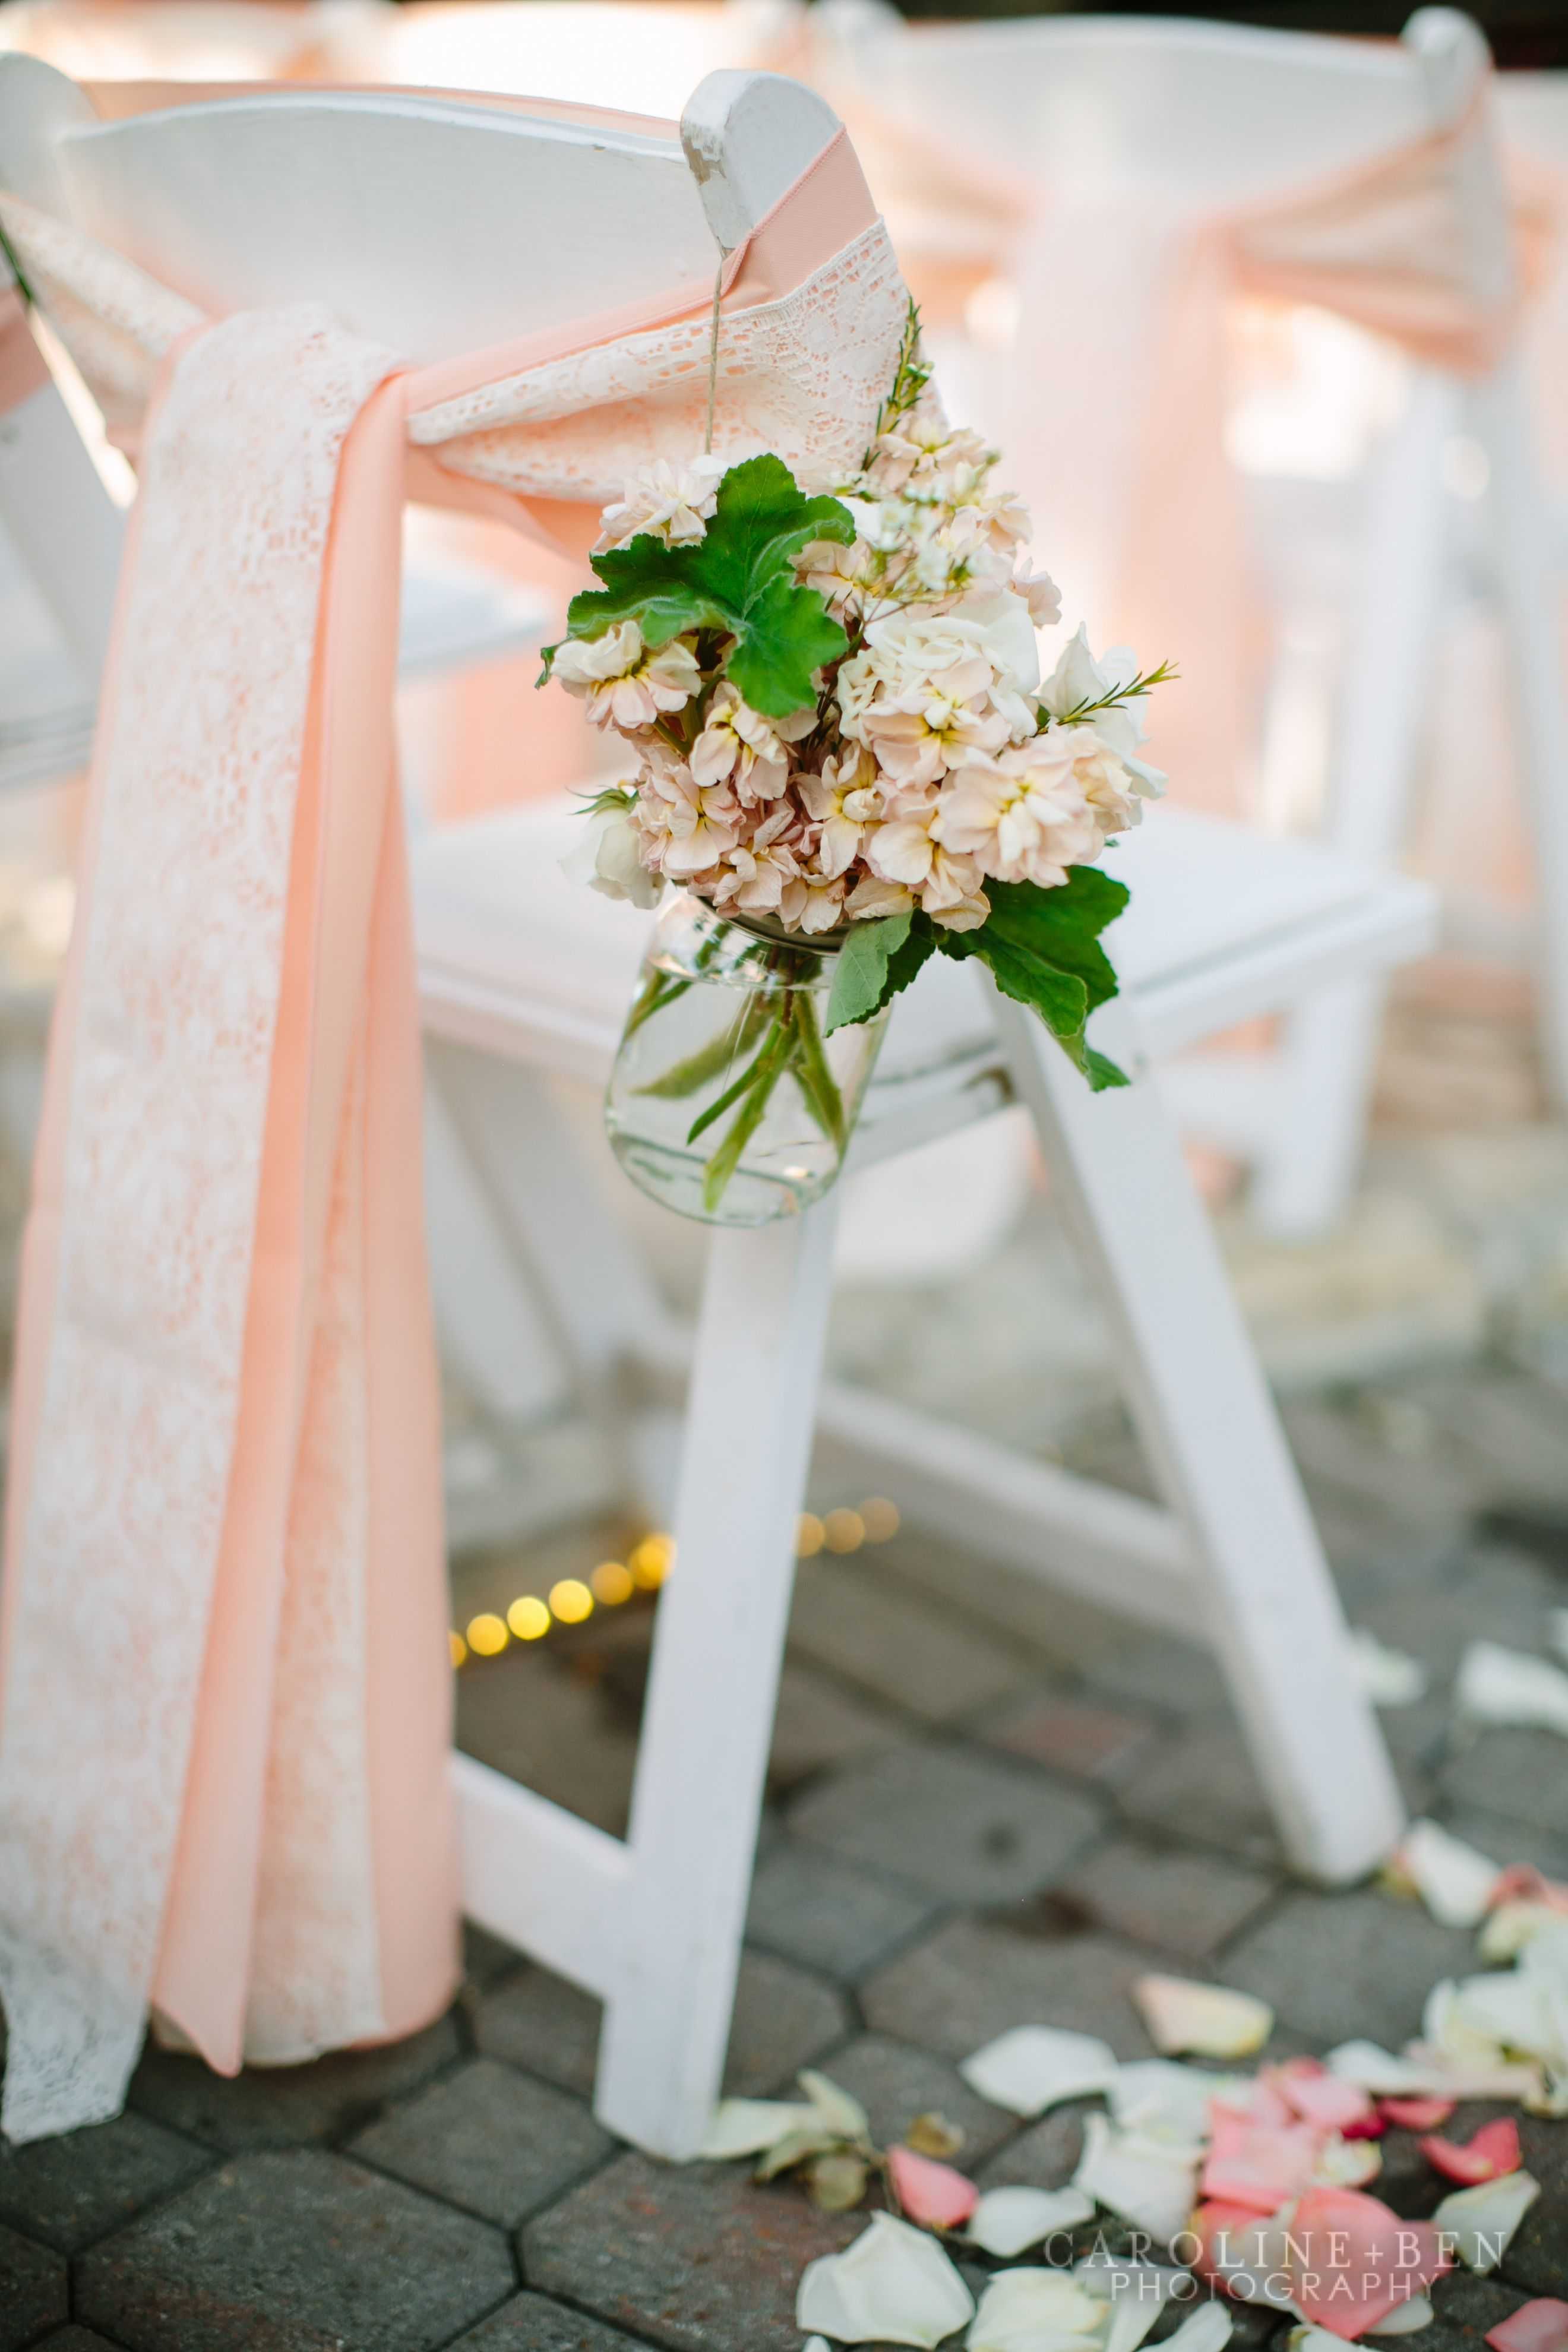 Add Lace To Wedding Chairs For A Feel Weddings Decor